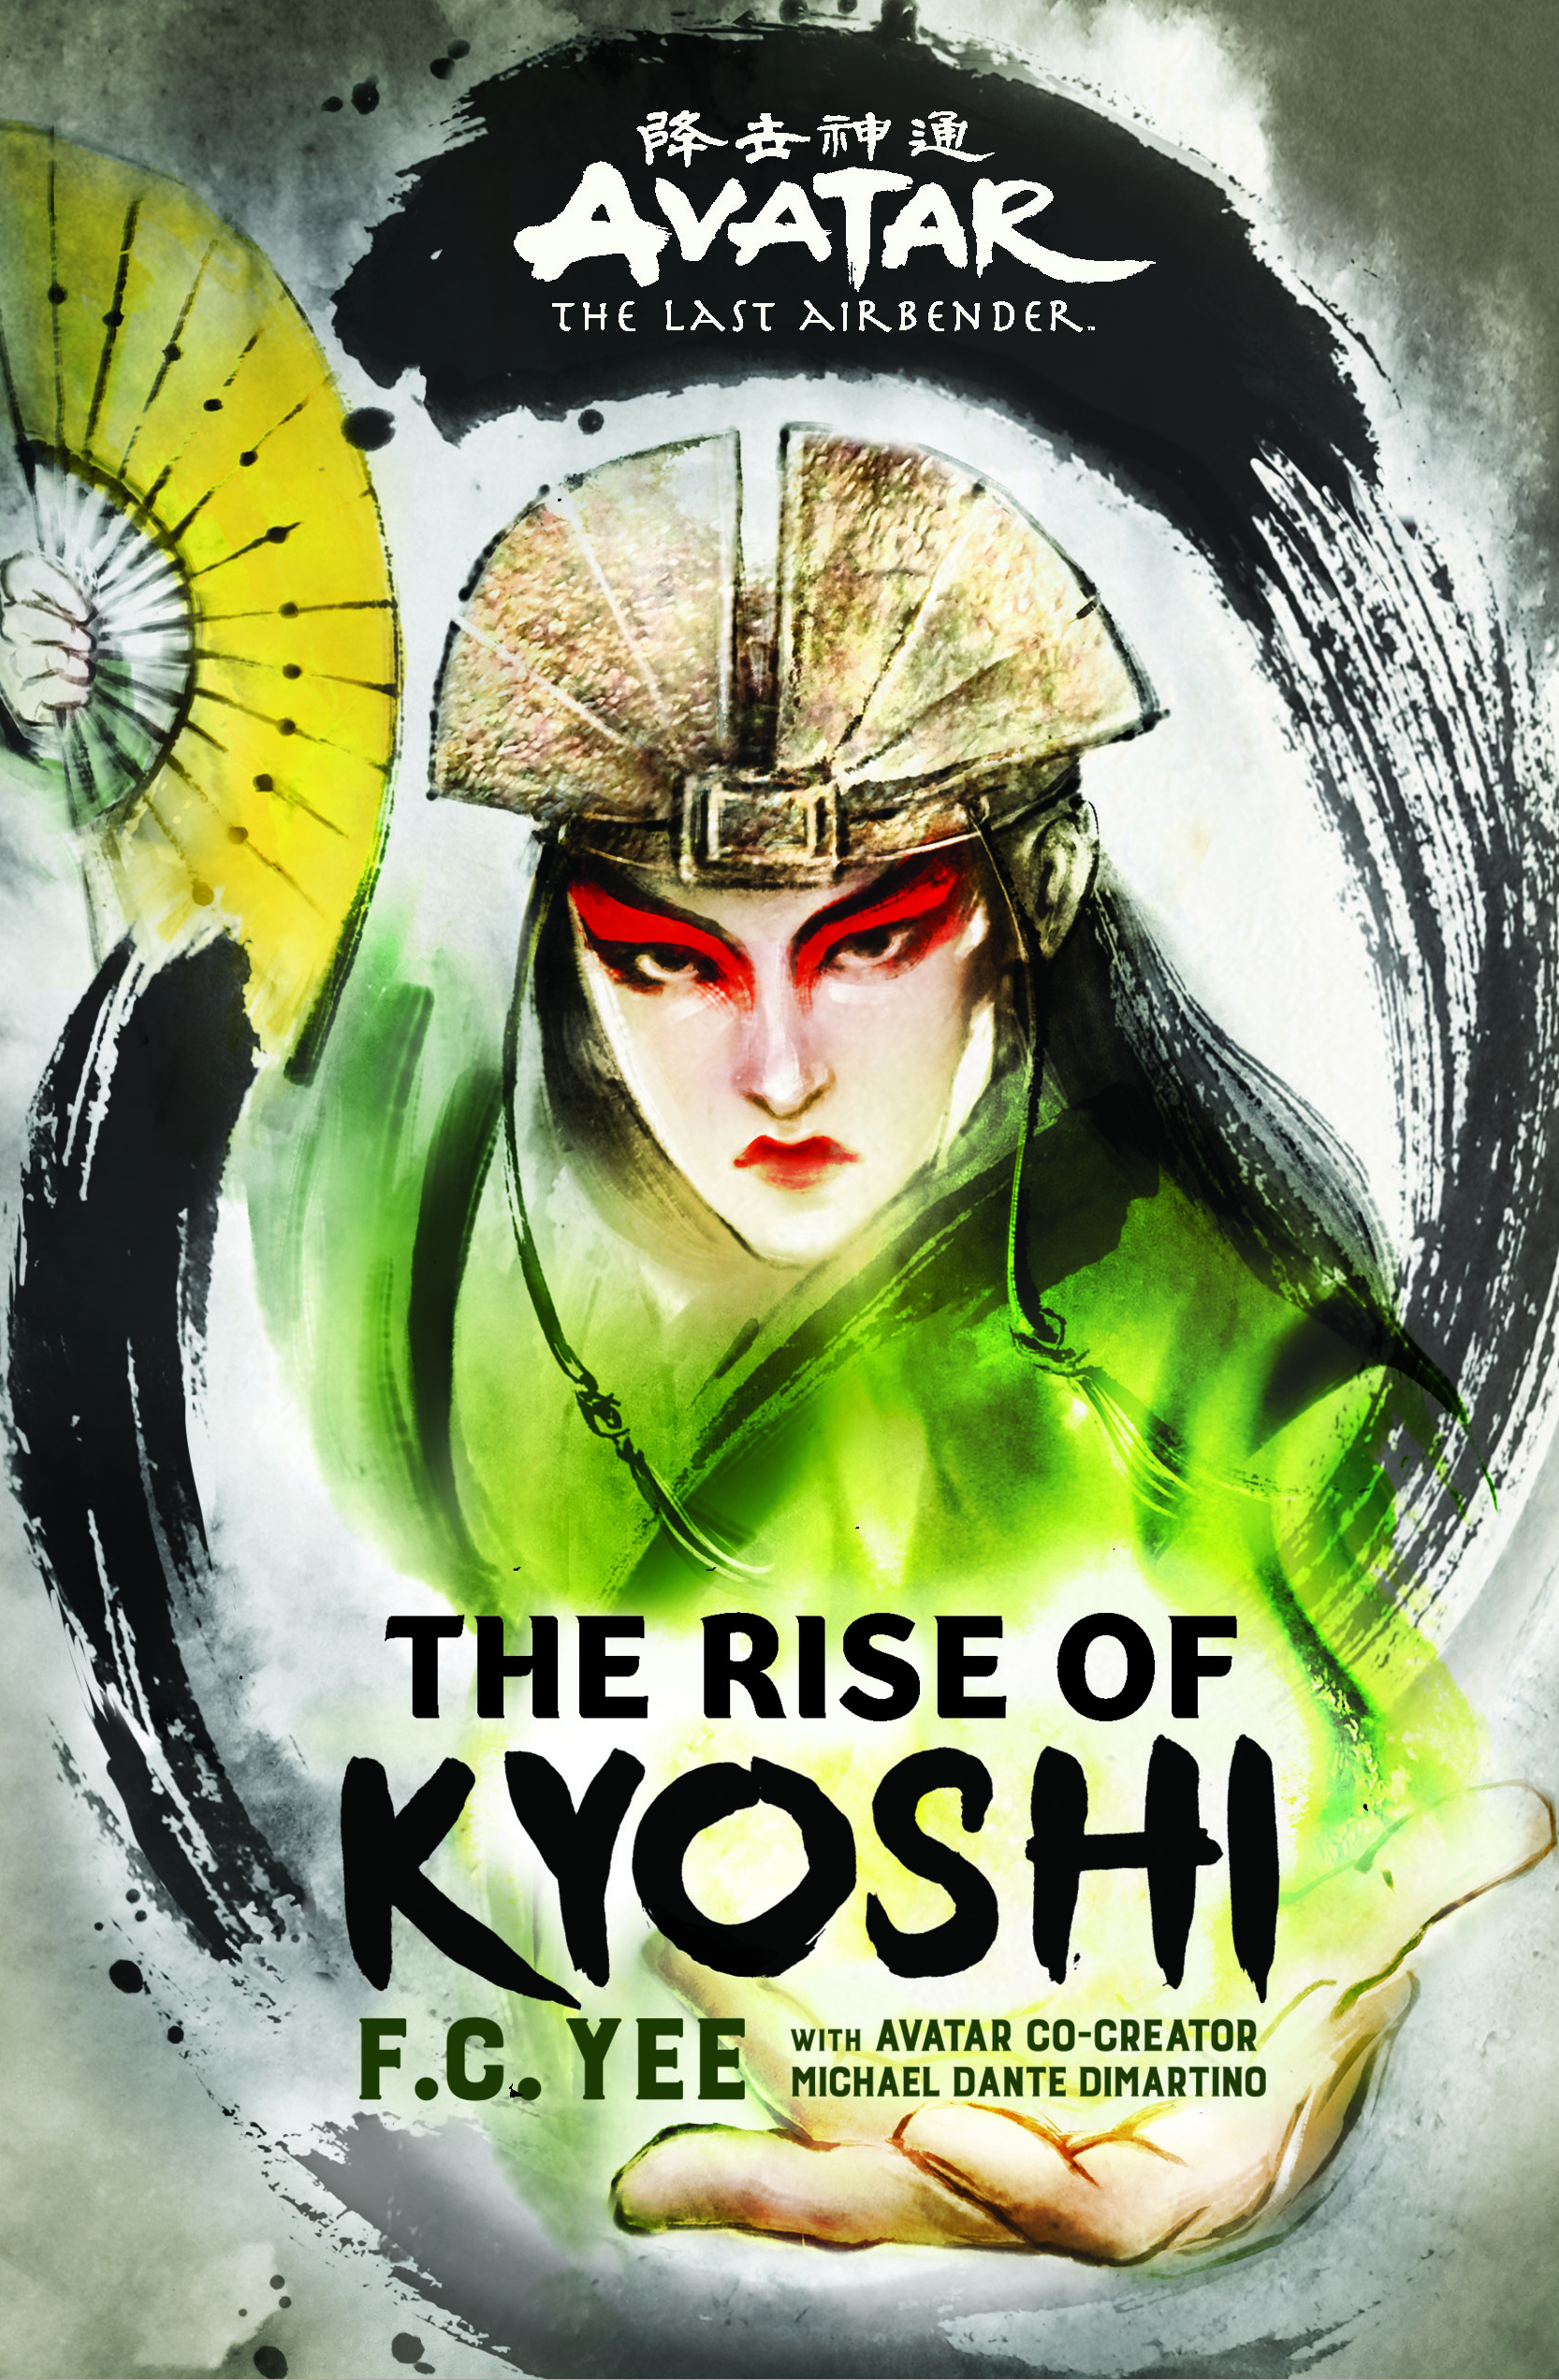 From Fan to Writer: F.C. Yee on Developing the Story of Avatar Kyoshi